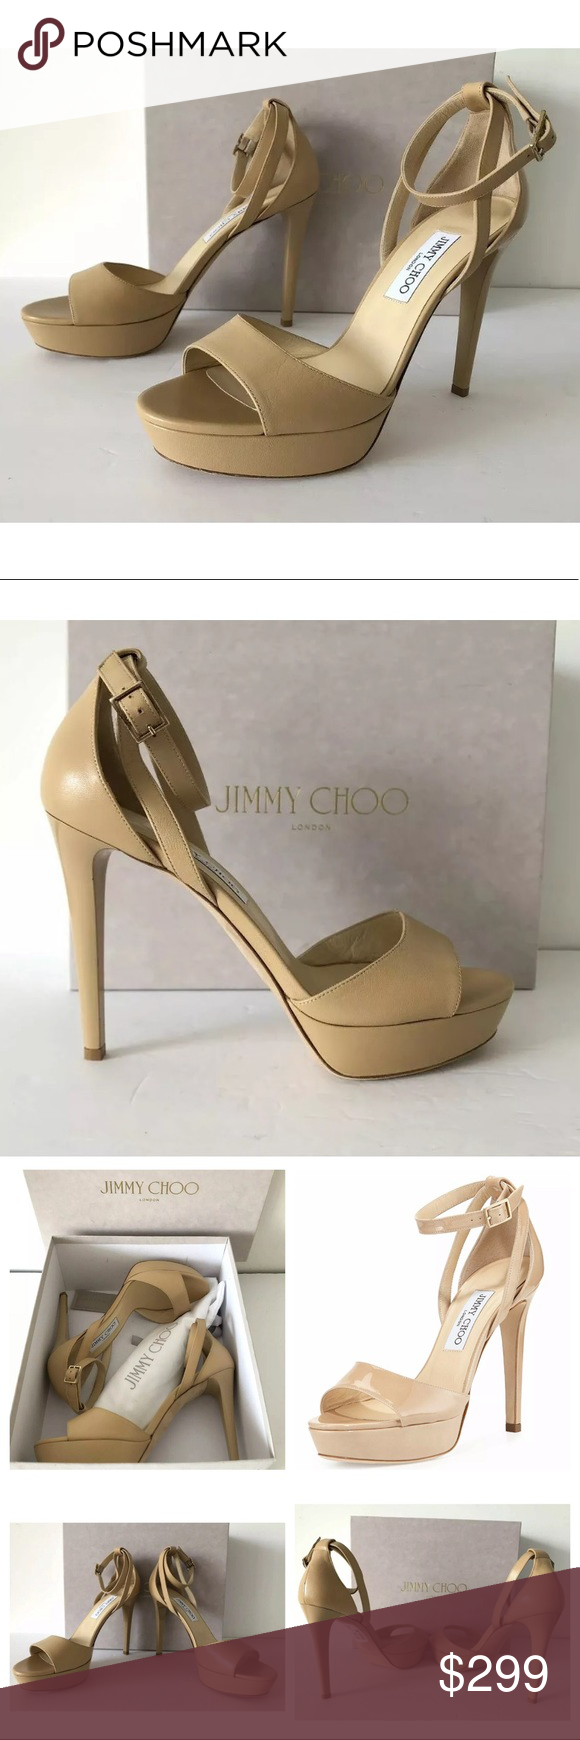 f484b10f128 JIMMY CHOO KAYDEN KID LEATHER PLATFORM HEEL SANDAL Jimmy Choo Kayden  -Condition  Brand New